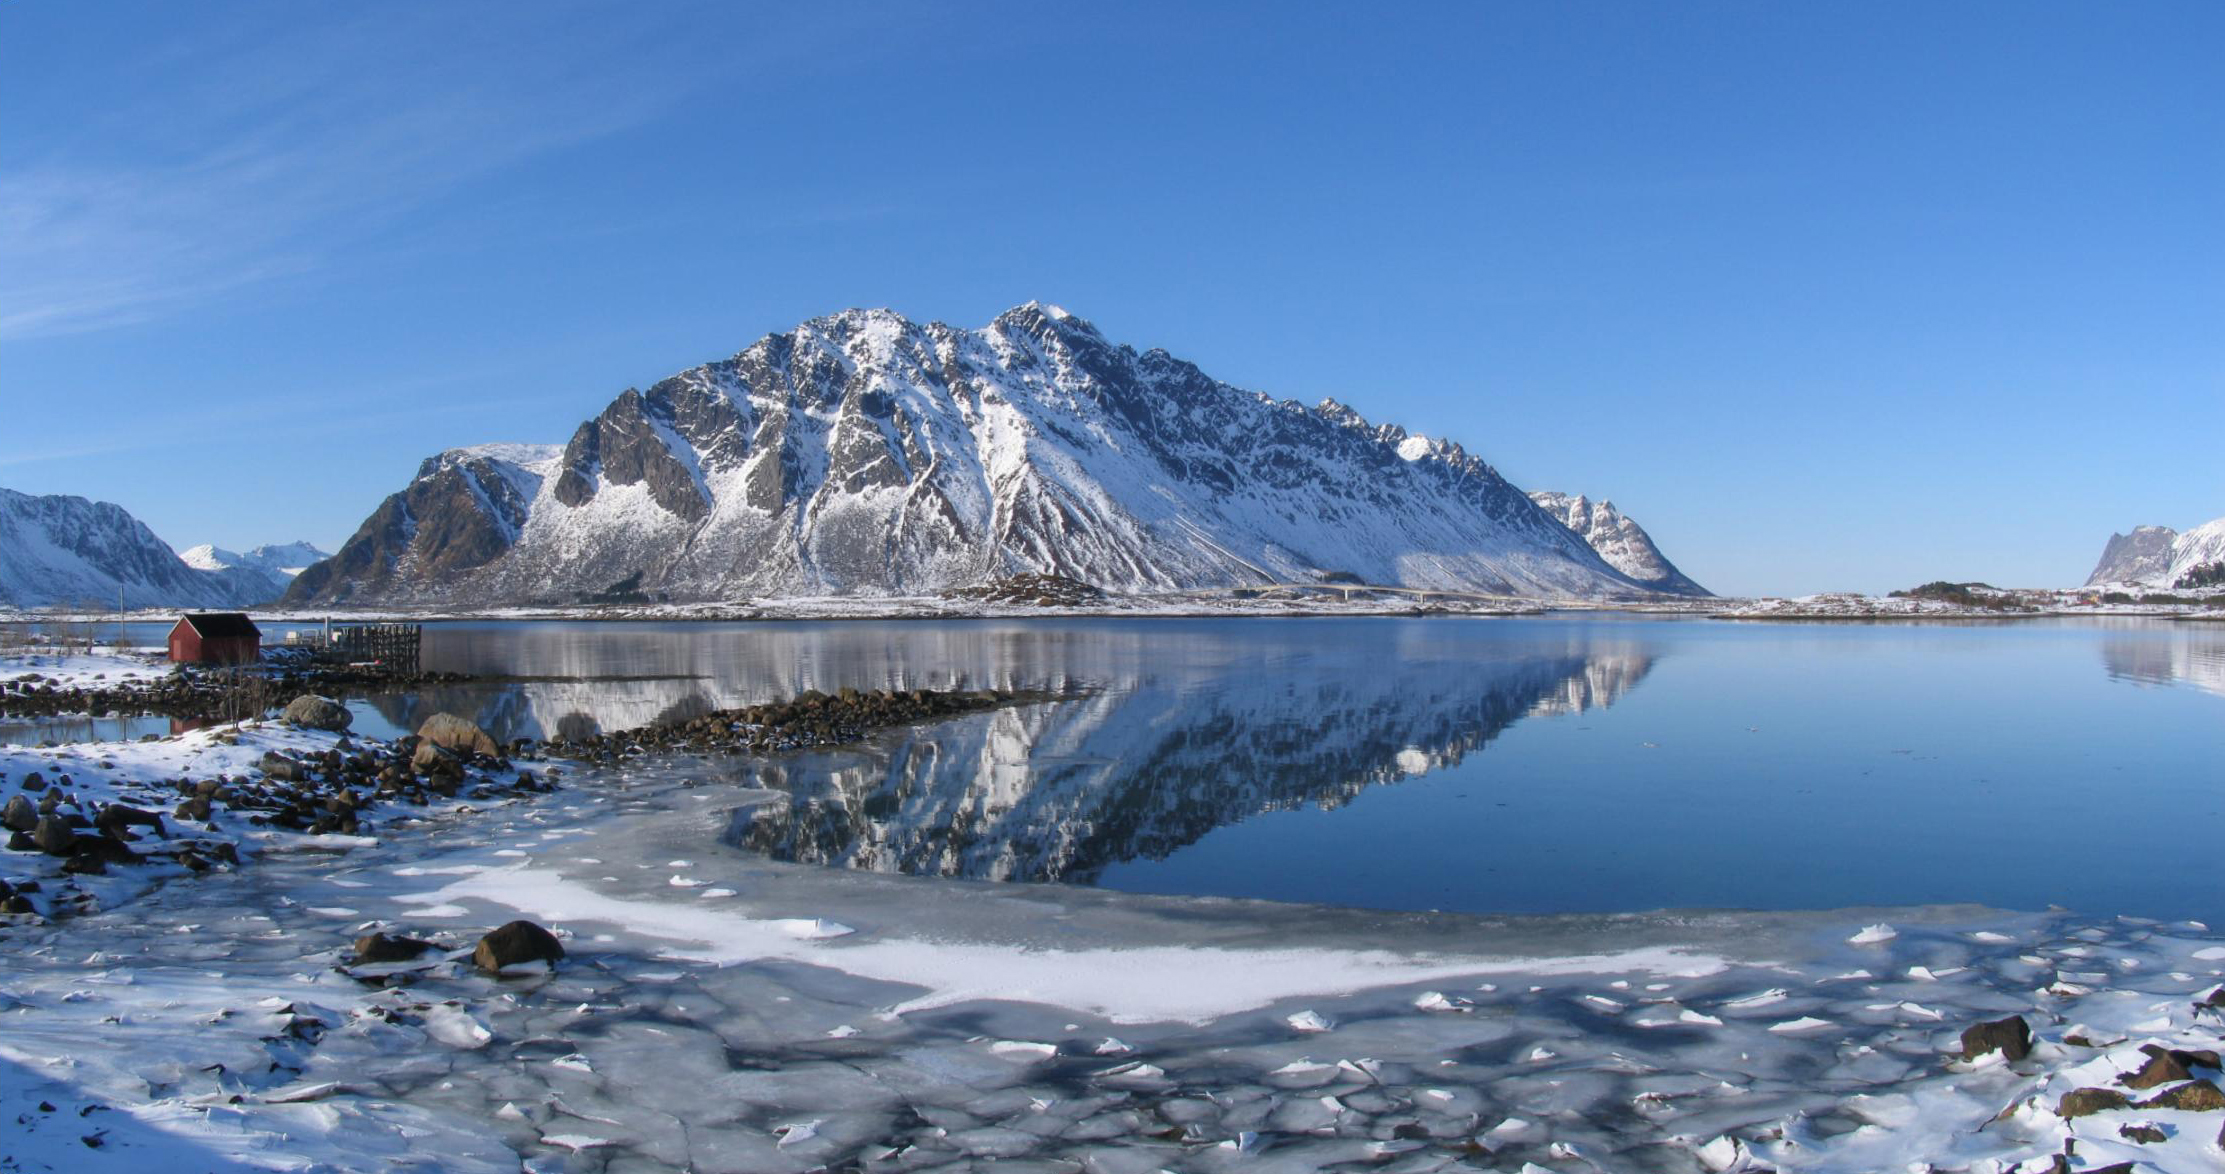 Winter at Lofoten